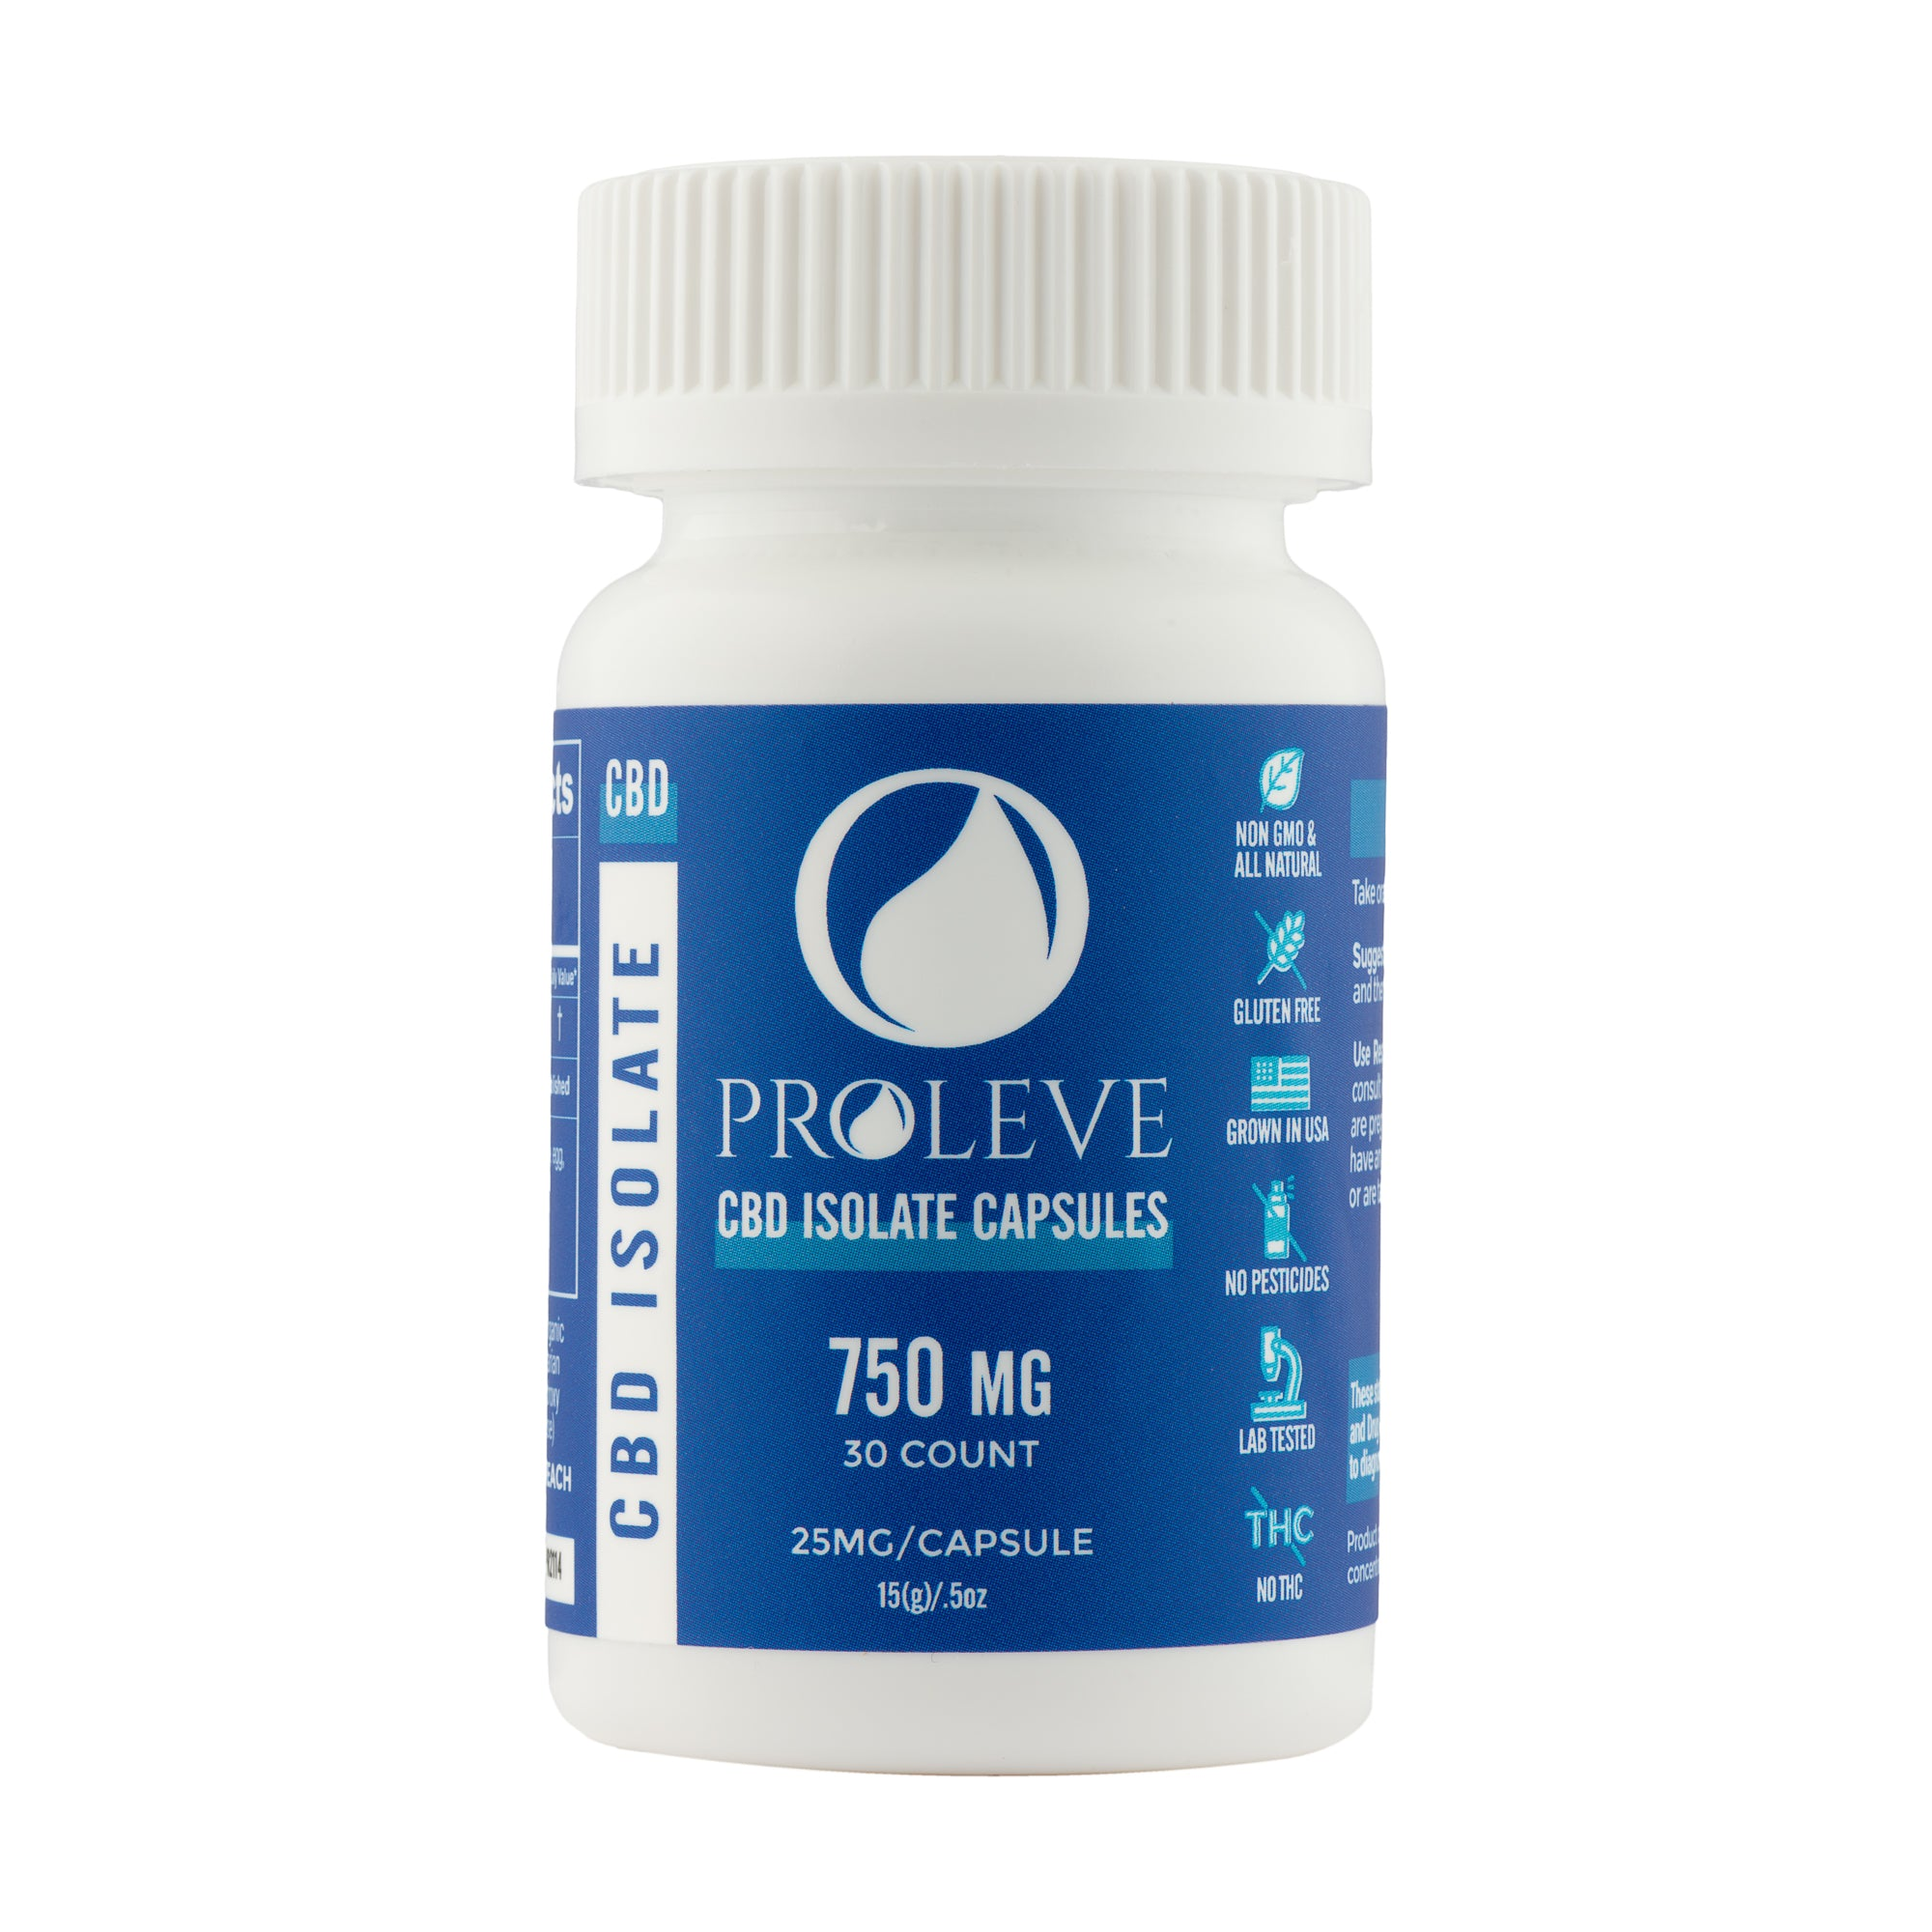 25mg Isolate Capsules 30 count